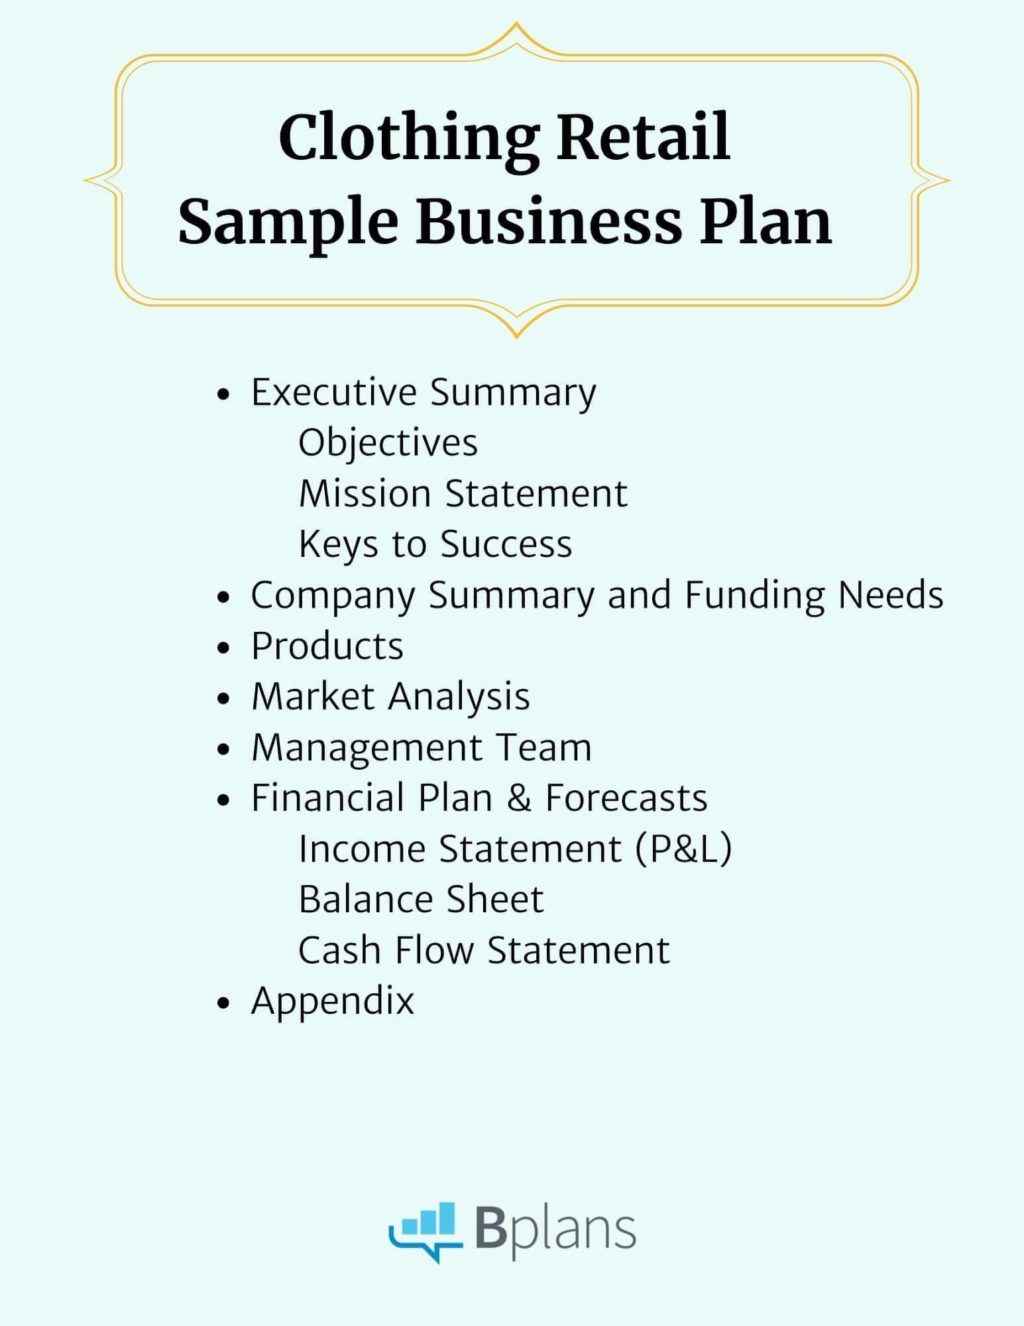 retail clothing business plan in 2020 | Business plan template. Business planning